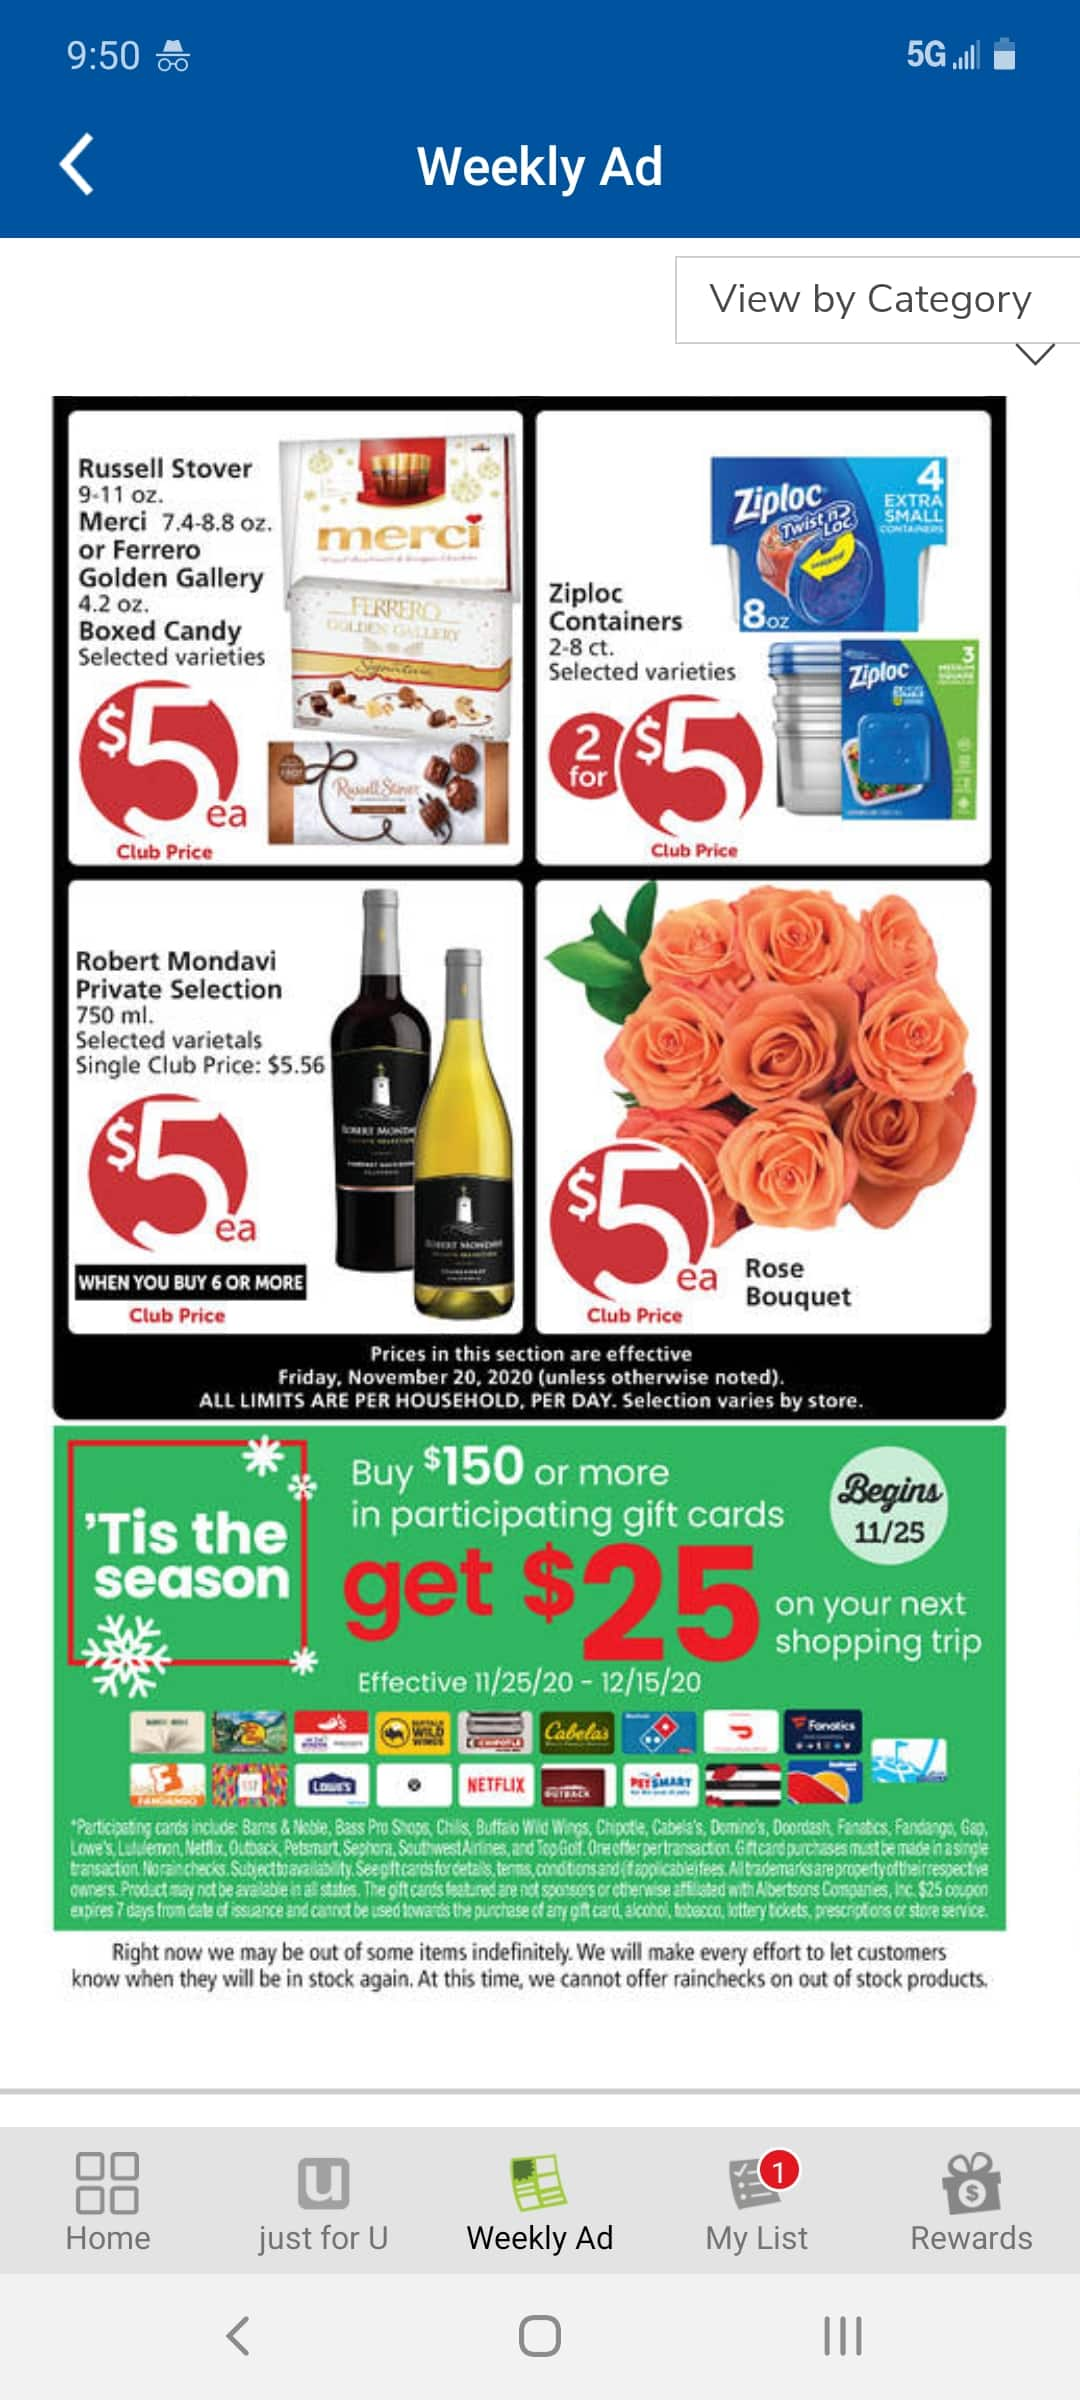 Albertsons, Vons, Safeway, etc. get $25 shopping coupon with purchase of $150 in select giftcards YMMV Starts 11-25-20